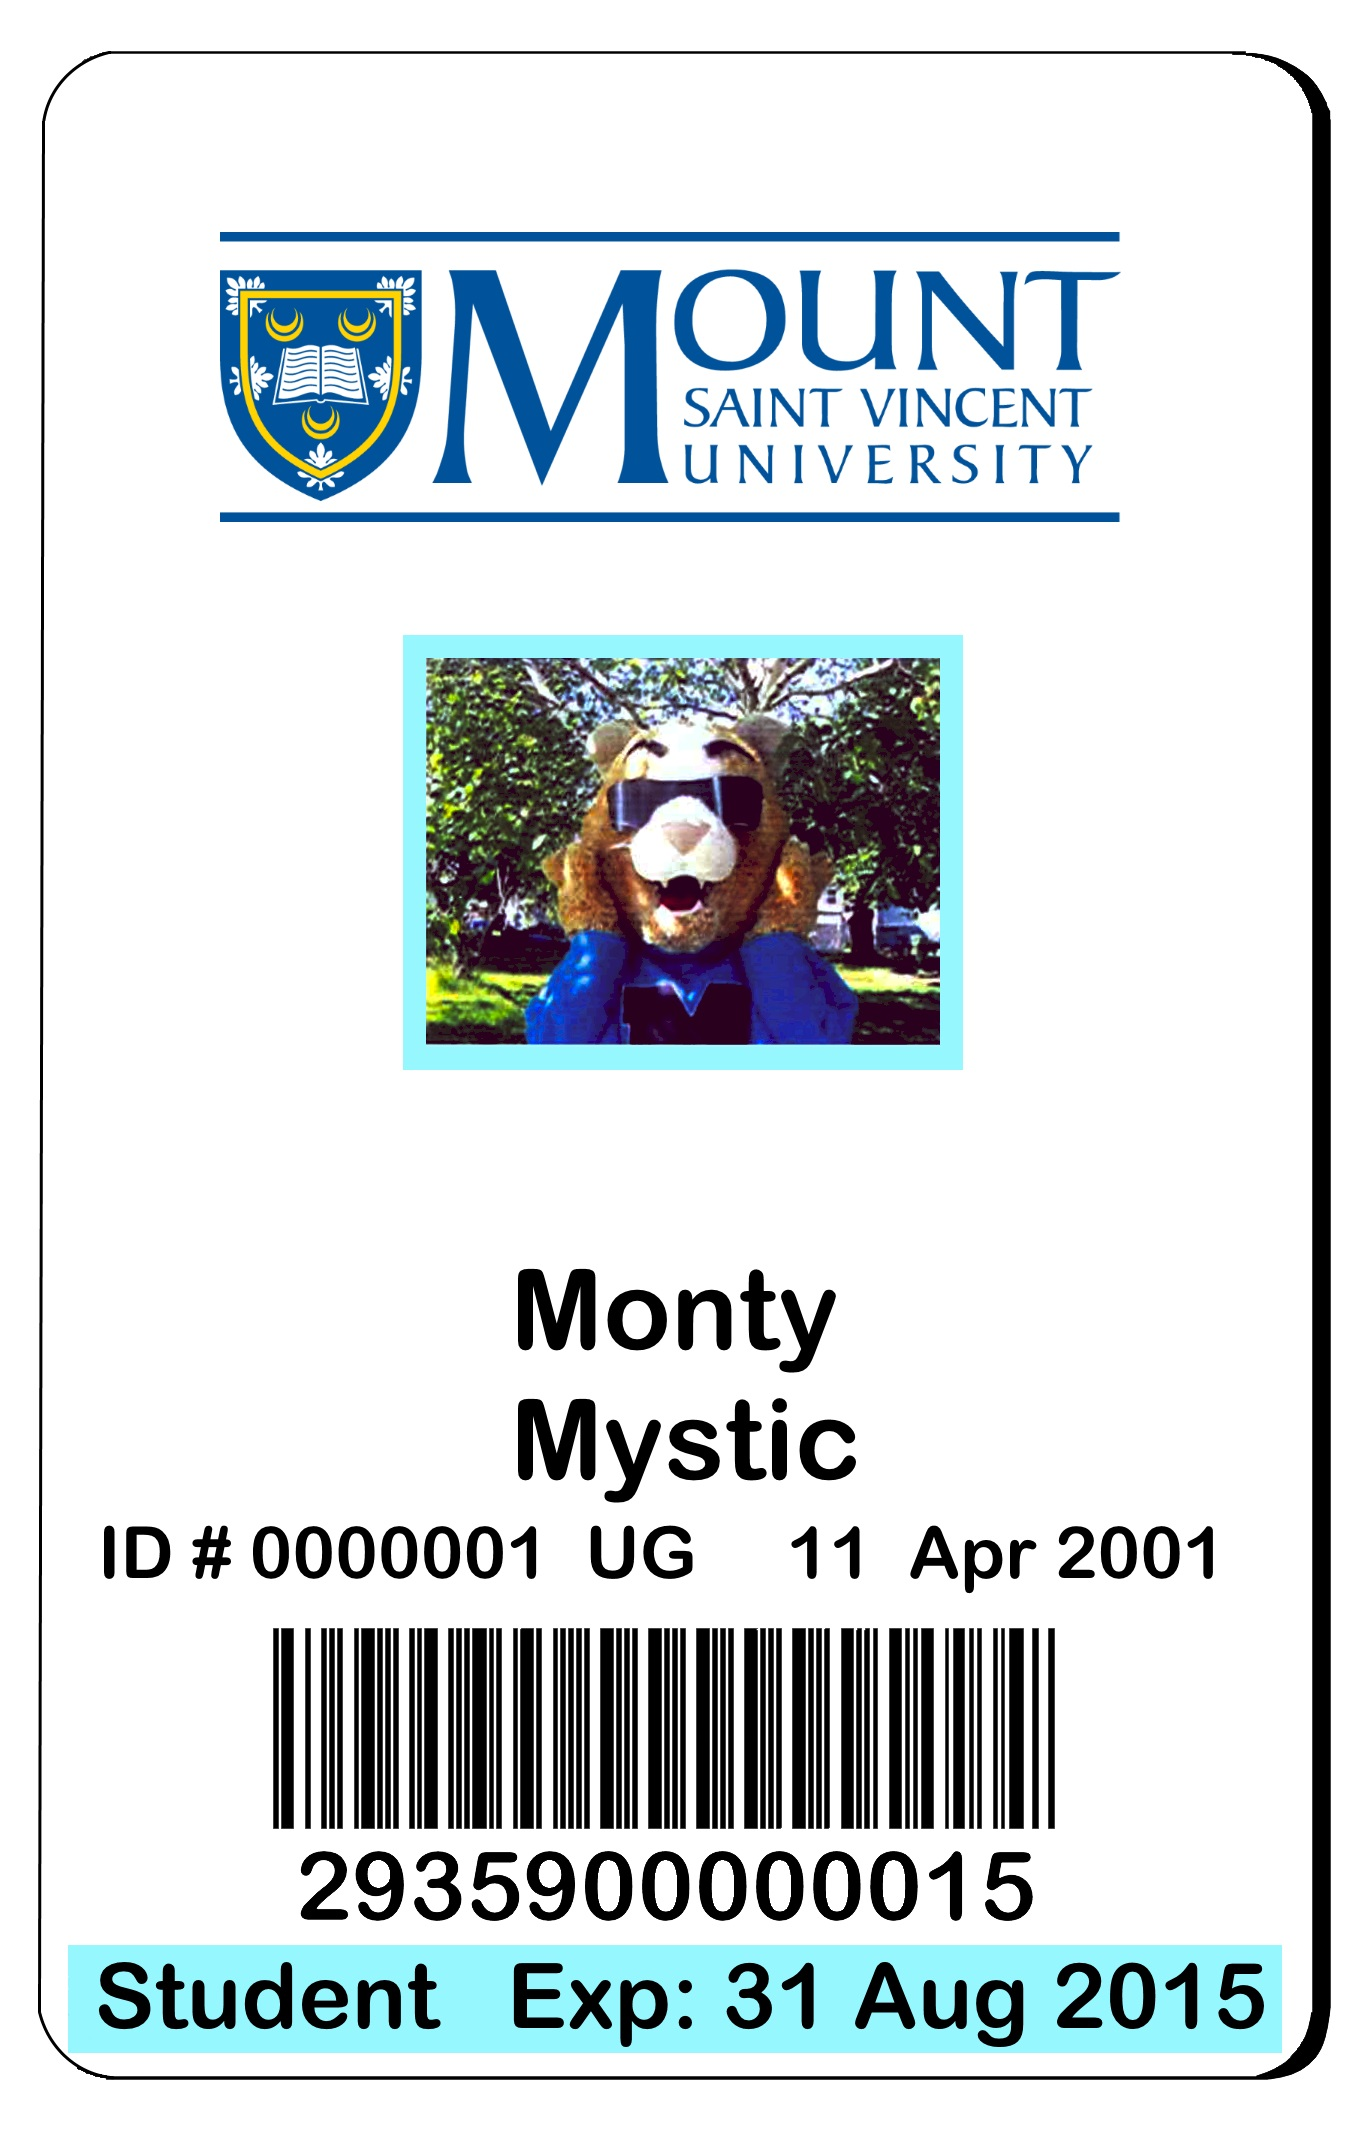 Image of Monty Mystic ID card